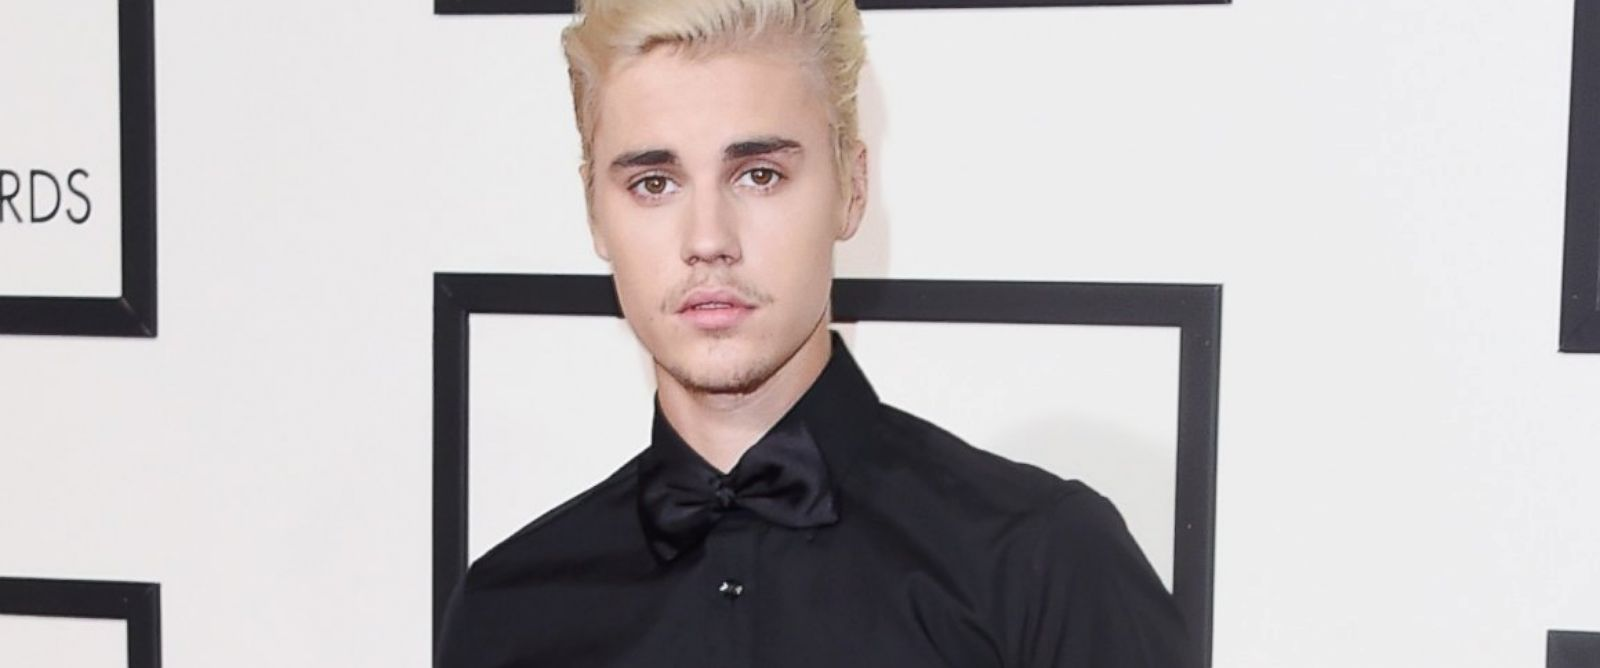 PHOTO:Justin Bieber attends The 58th GRAMMY Awards at Staples Center, Feb. 15, 2016, in Los Angeles.